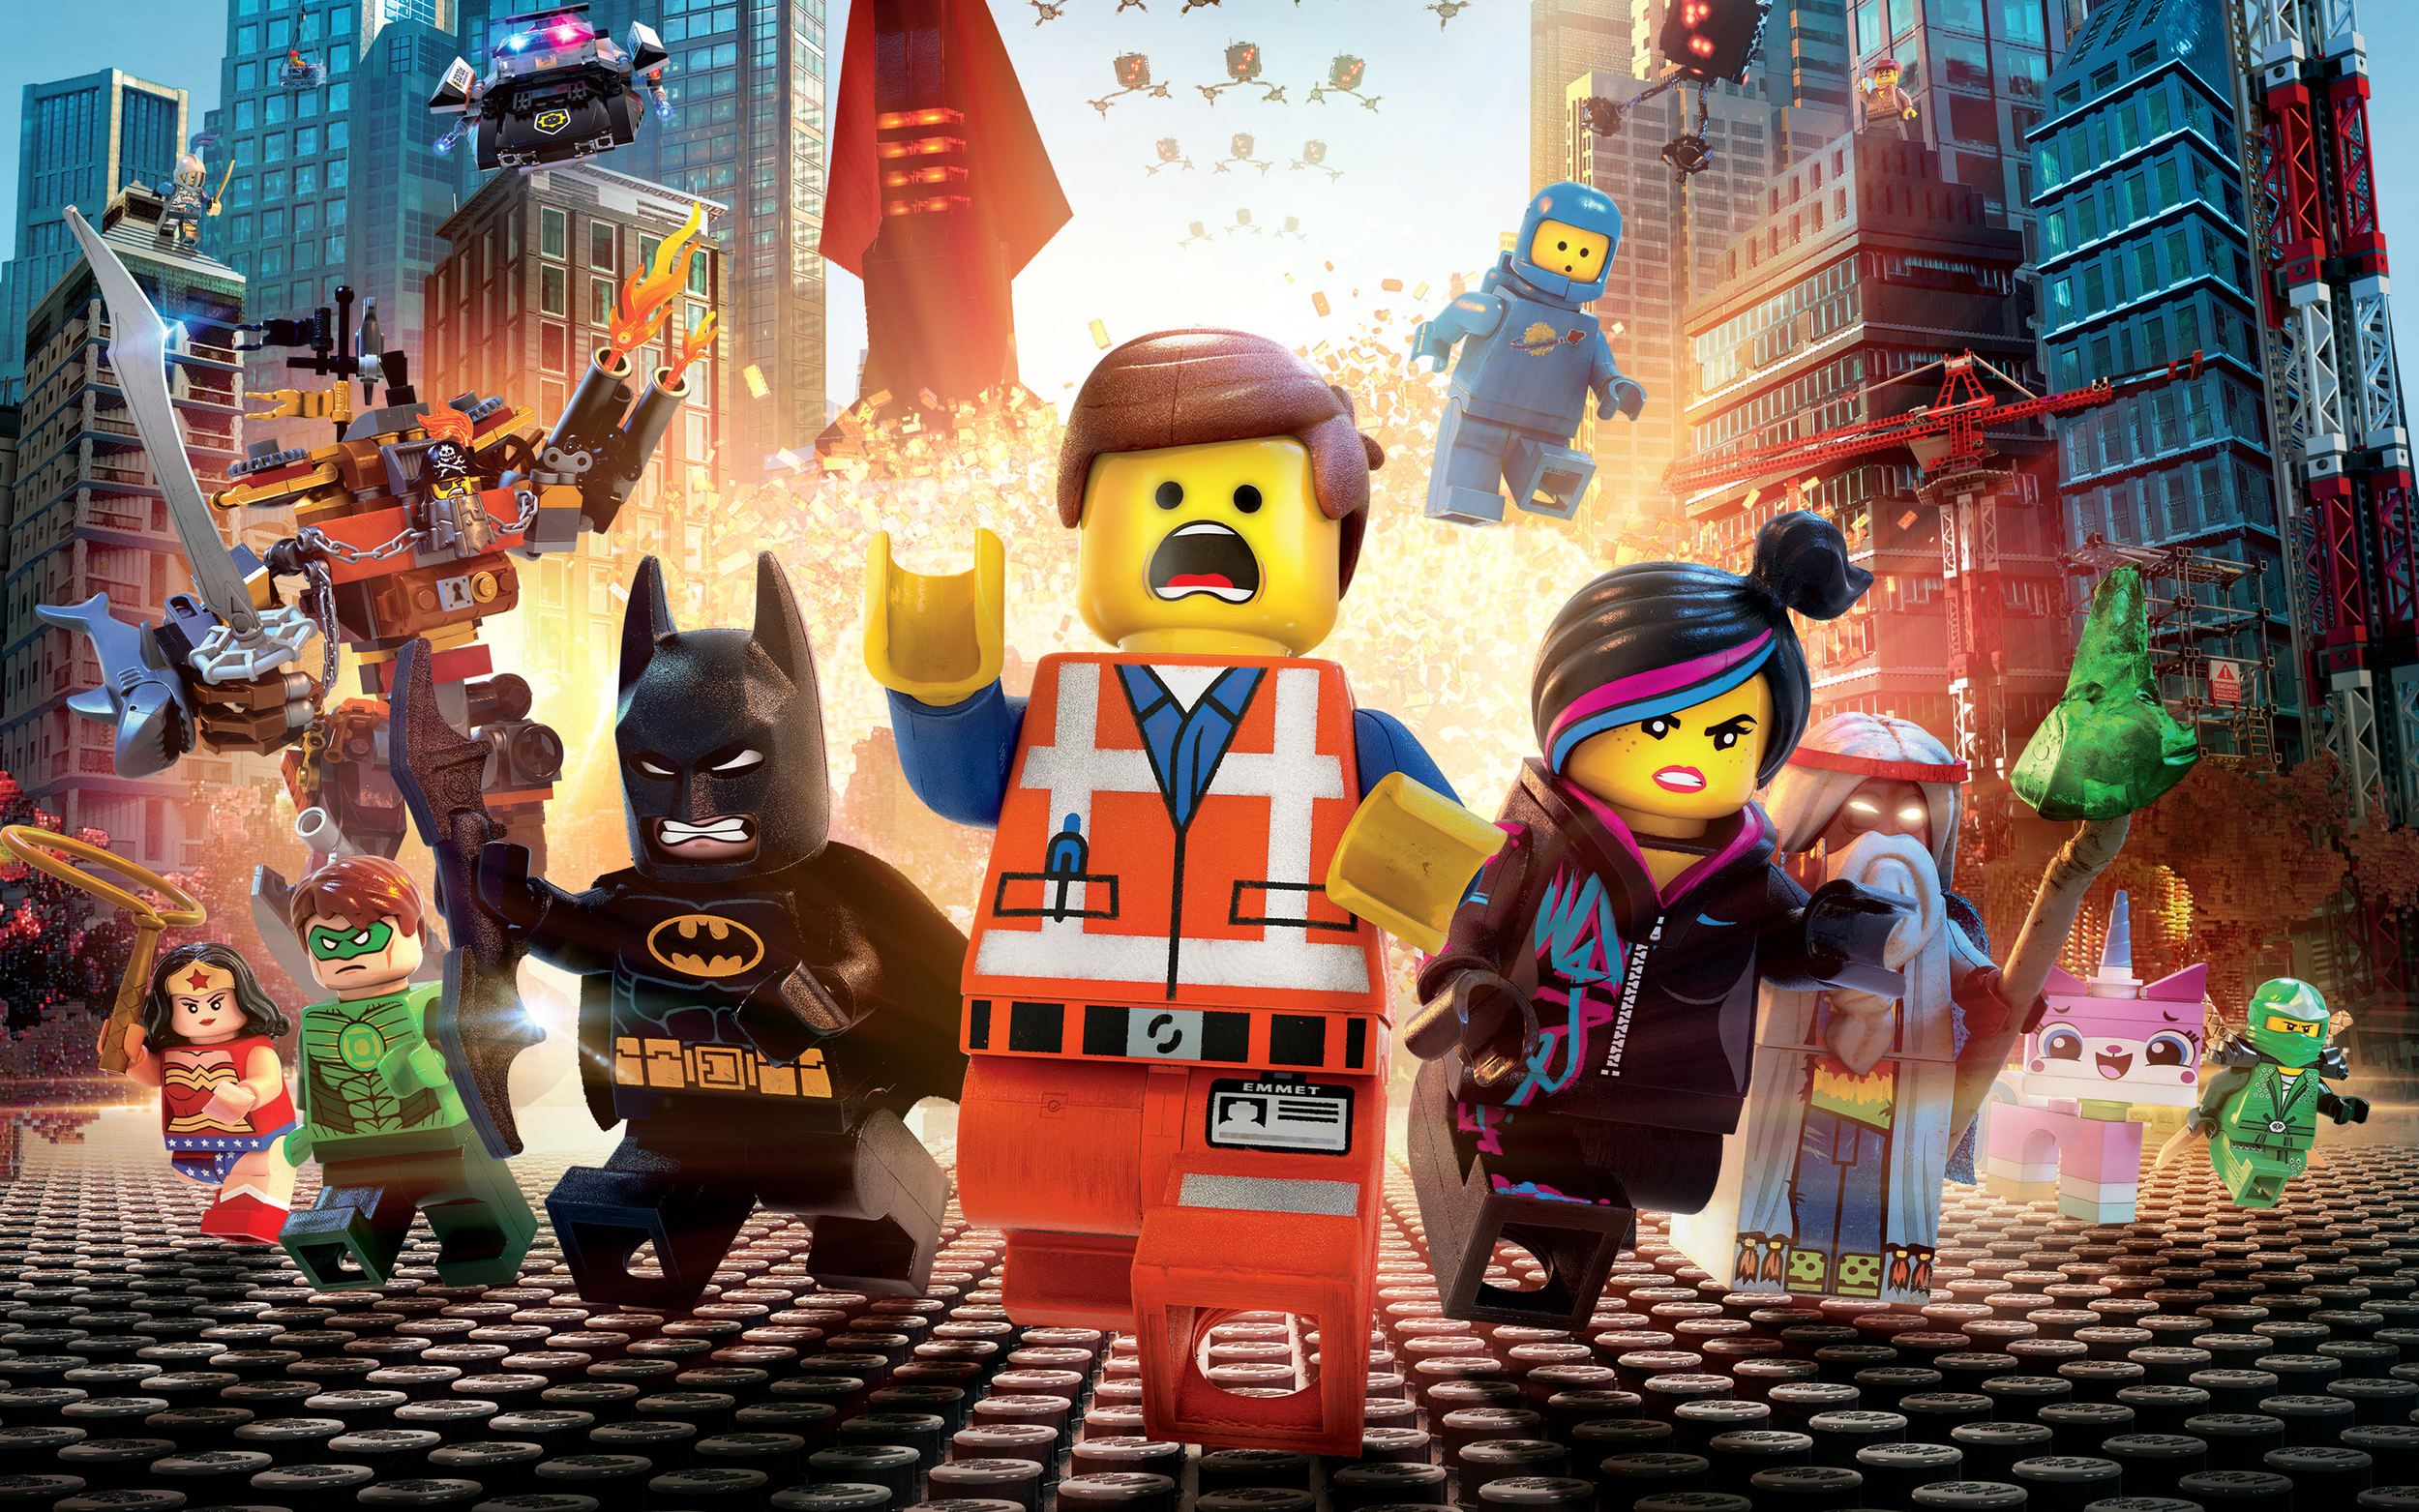 I wish  The Lego Movie  gave us more interactions across franchises and stronger female characters.